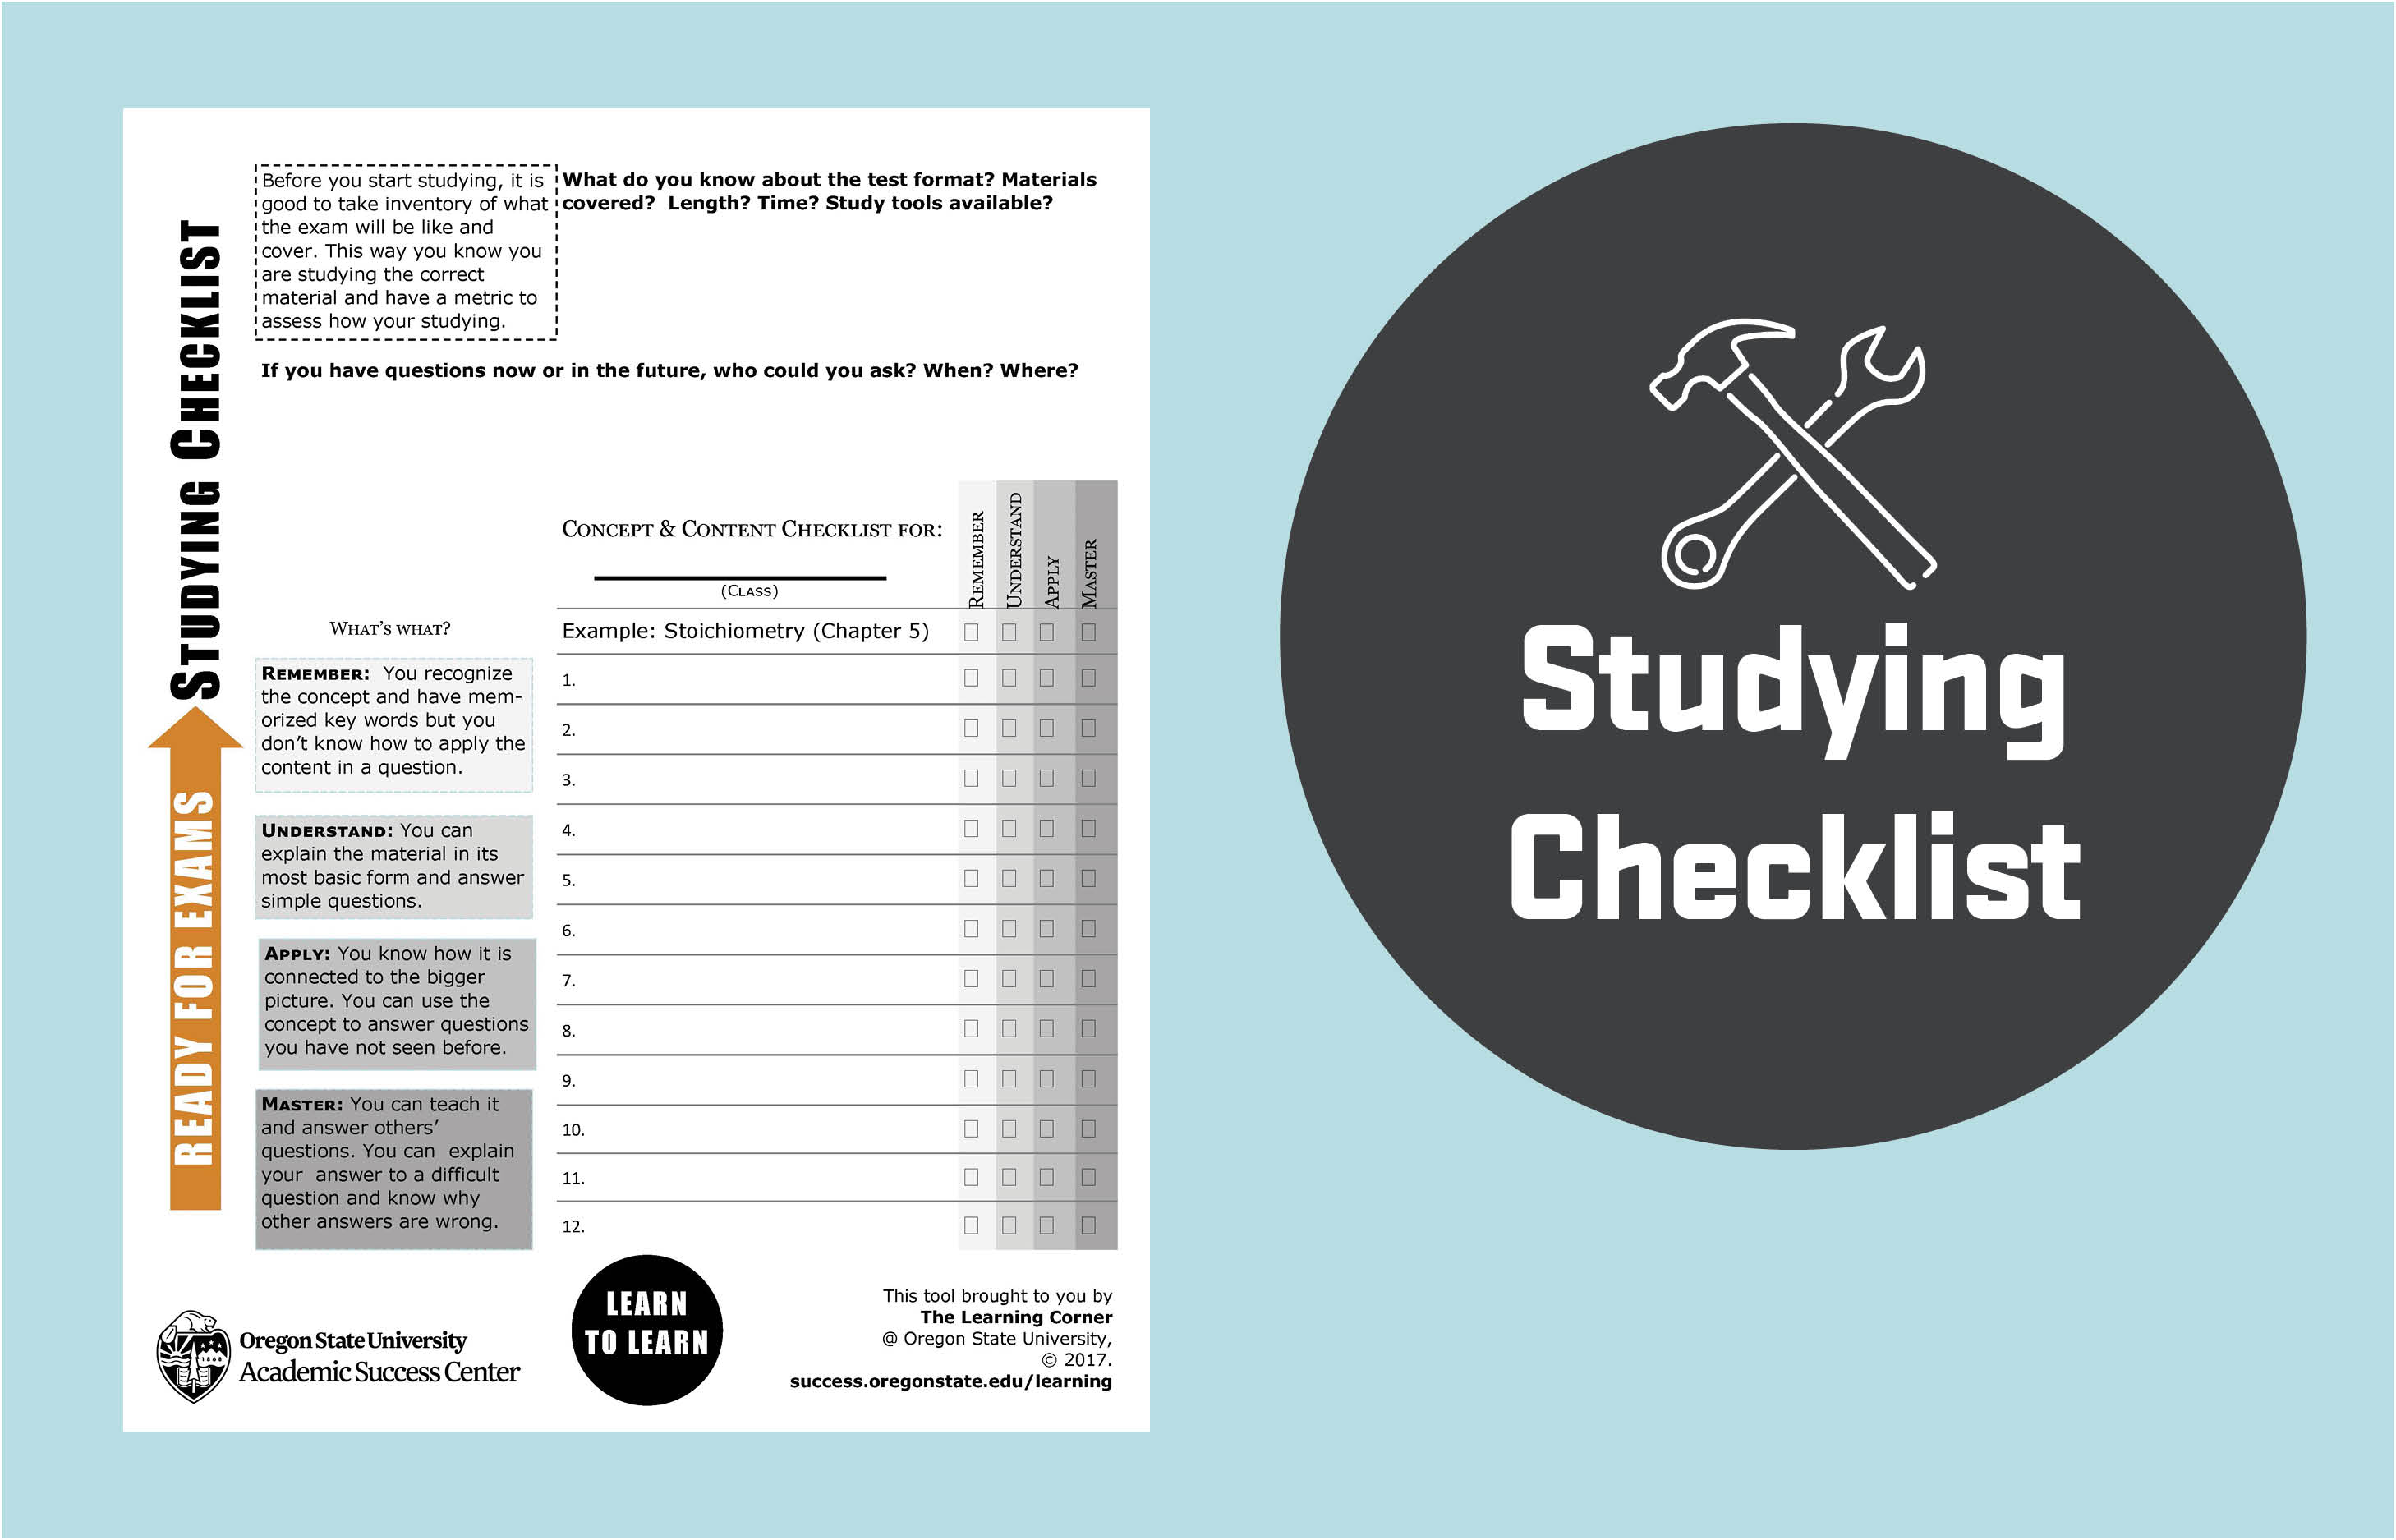 Studying Checklist